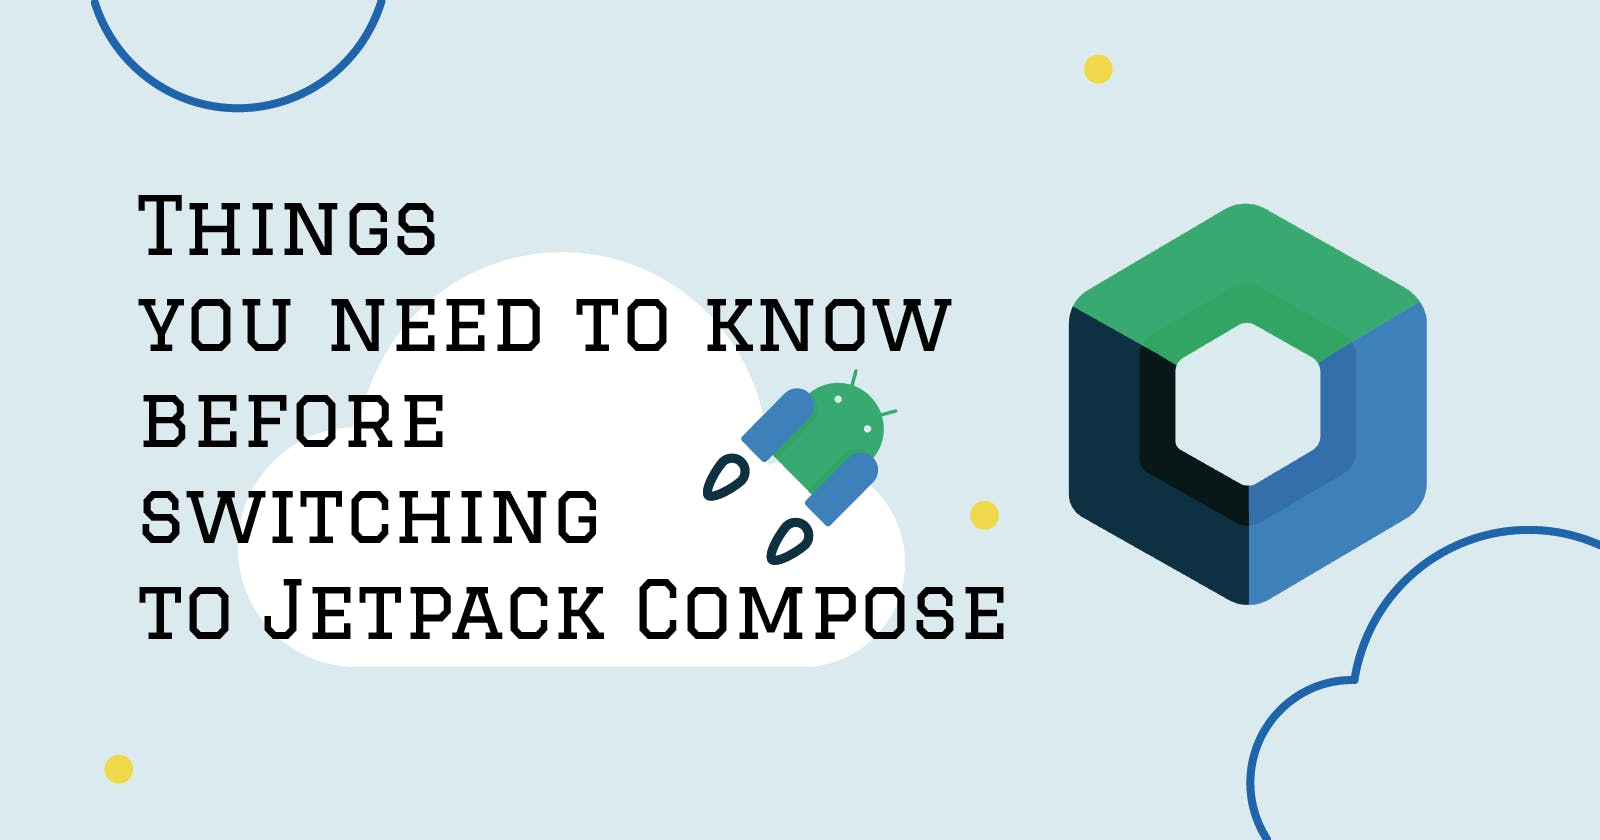 Things you need to know before switching to Jetpack Compose